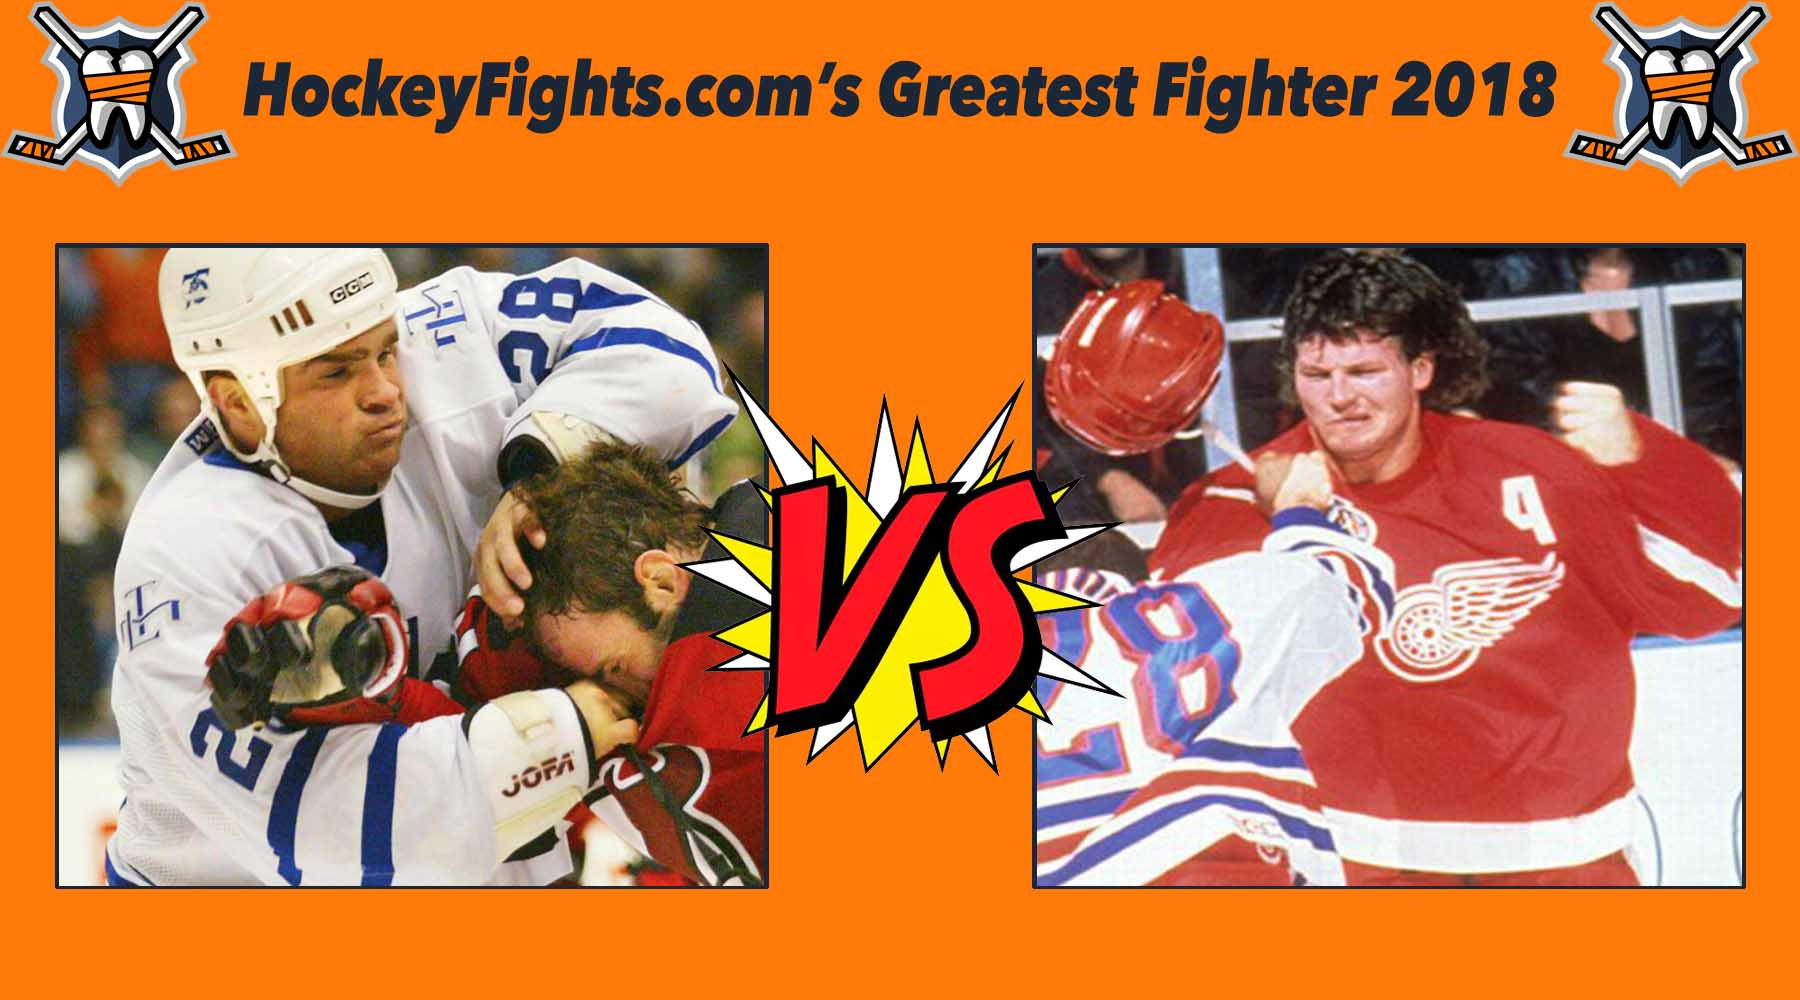 HockeyFights.com Fantasy Fighting Championship Bracket: The Final